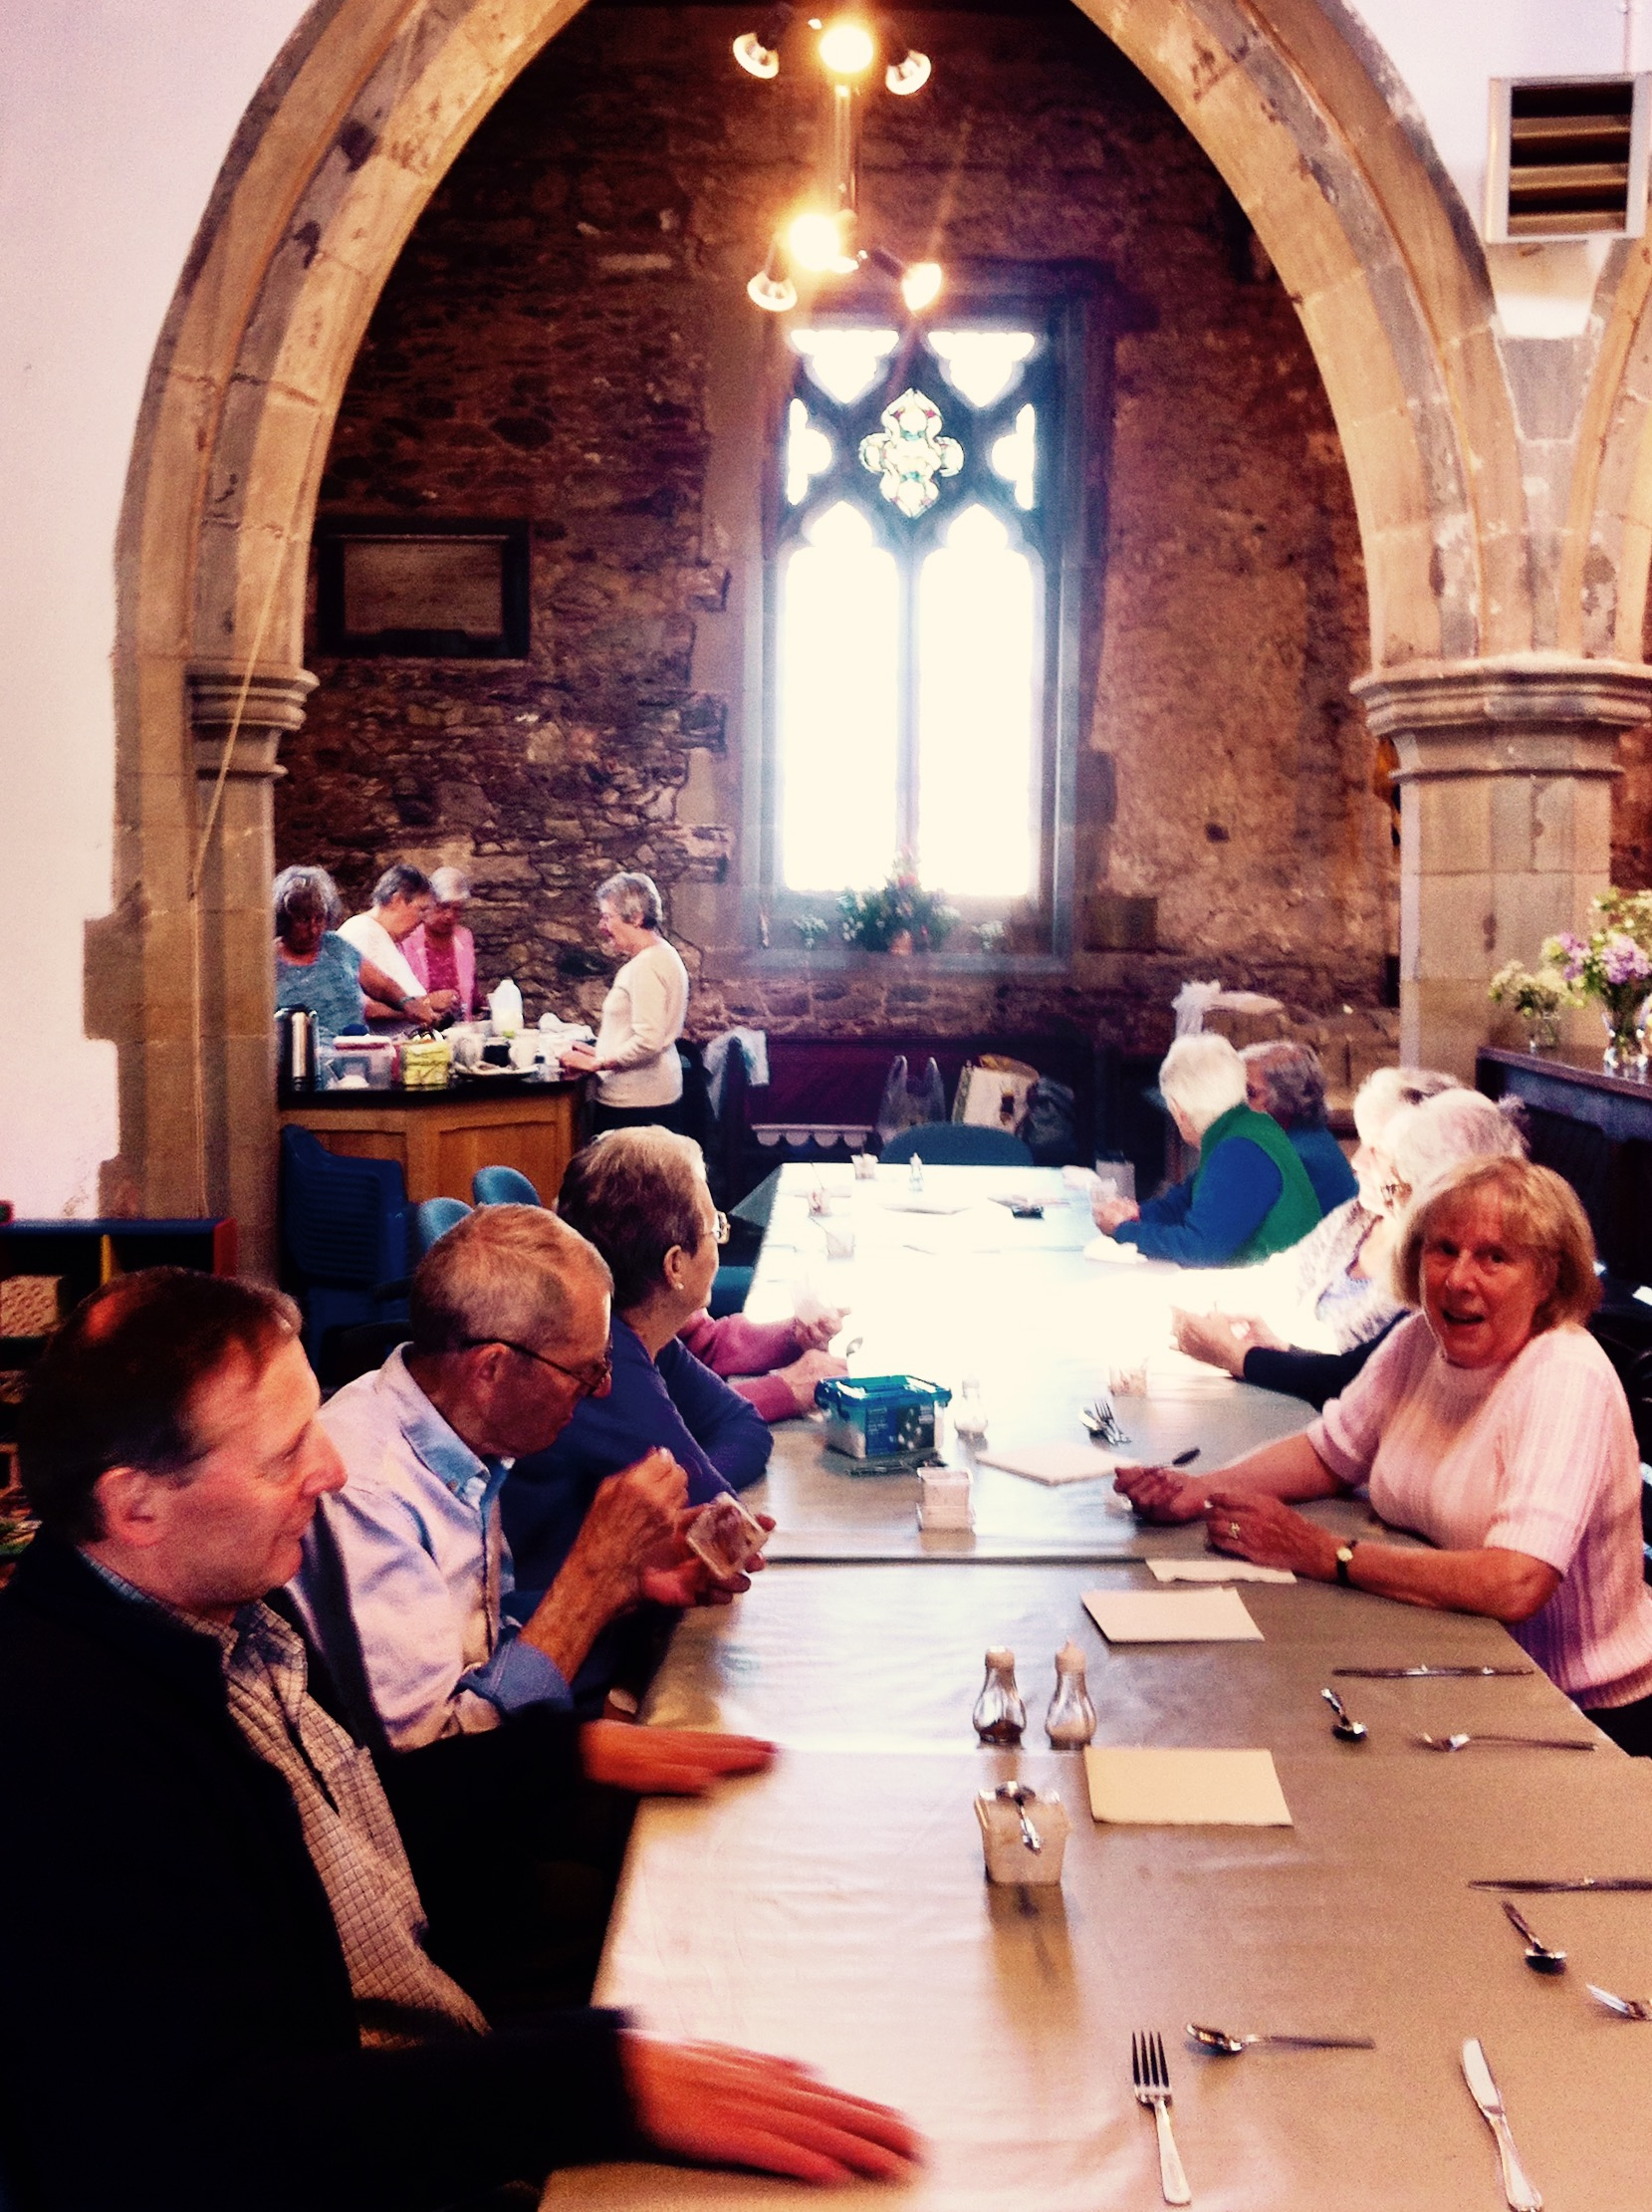 Belton parish church Leicestershire community lunch club - Paul Conneally May 2017